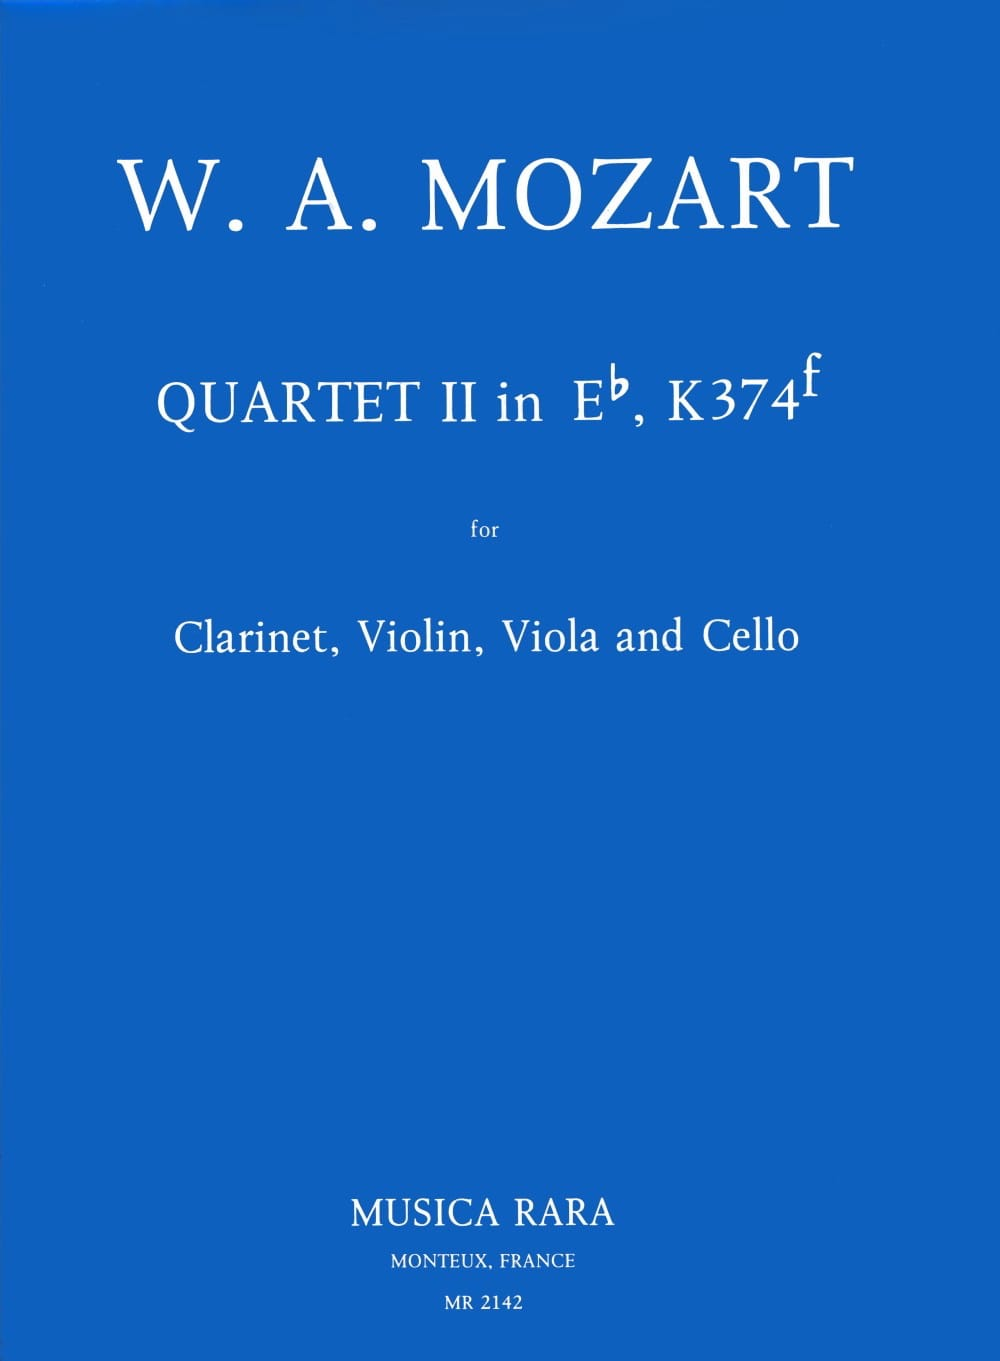 MOZART - Quartet No. 2 in Eb, KV 374f - violin clarinet viola cello - Partition - di-arezzo.co.uk